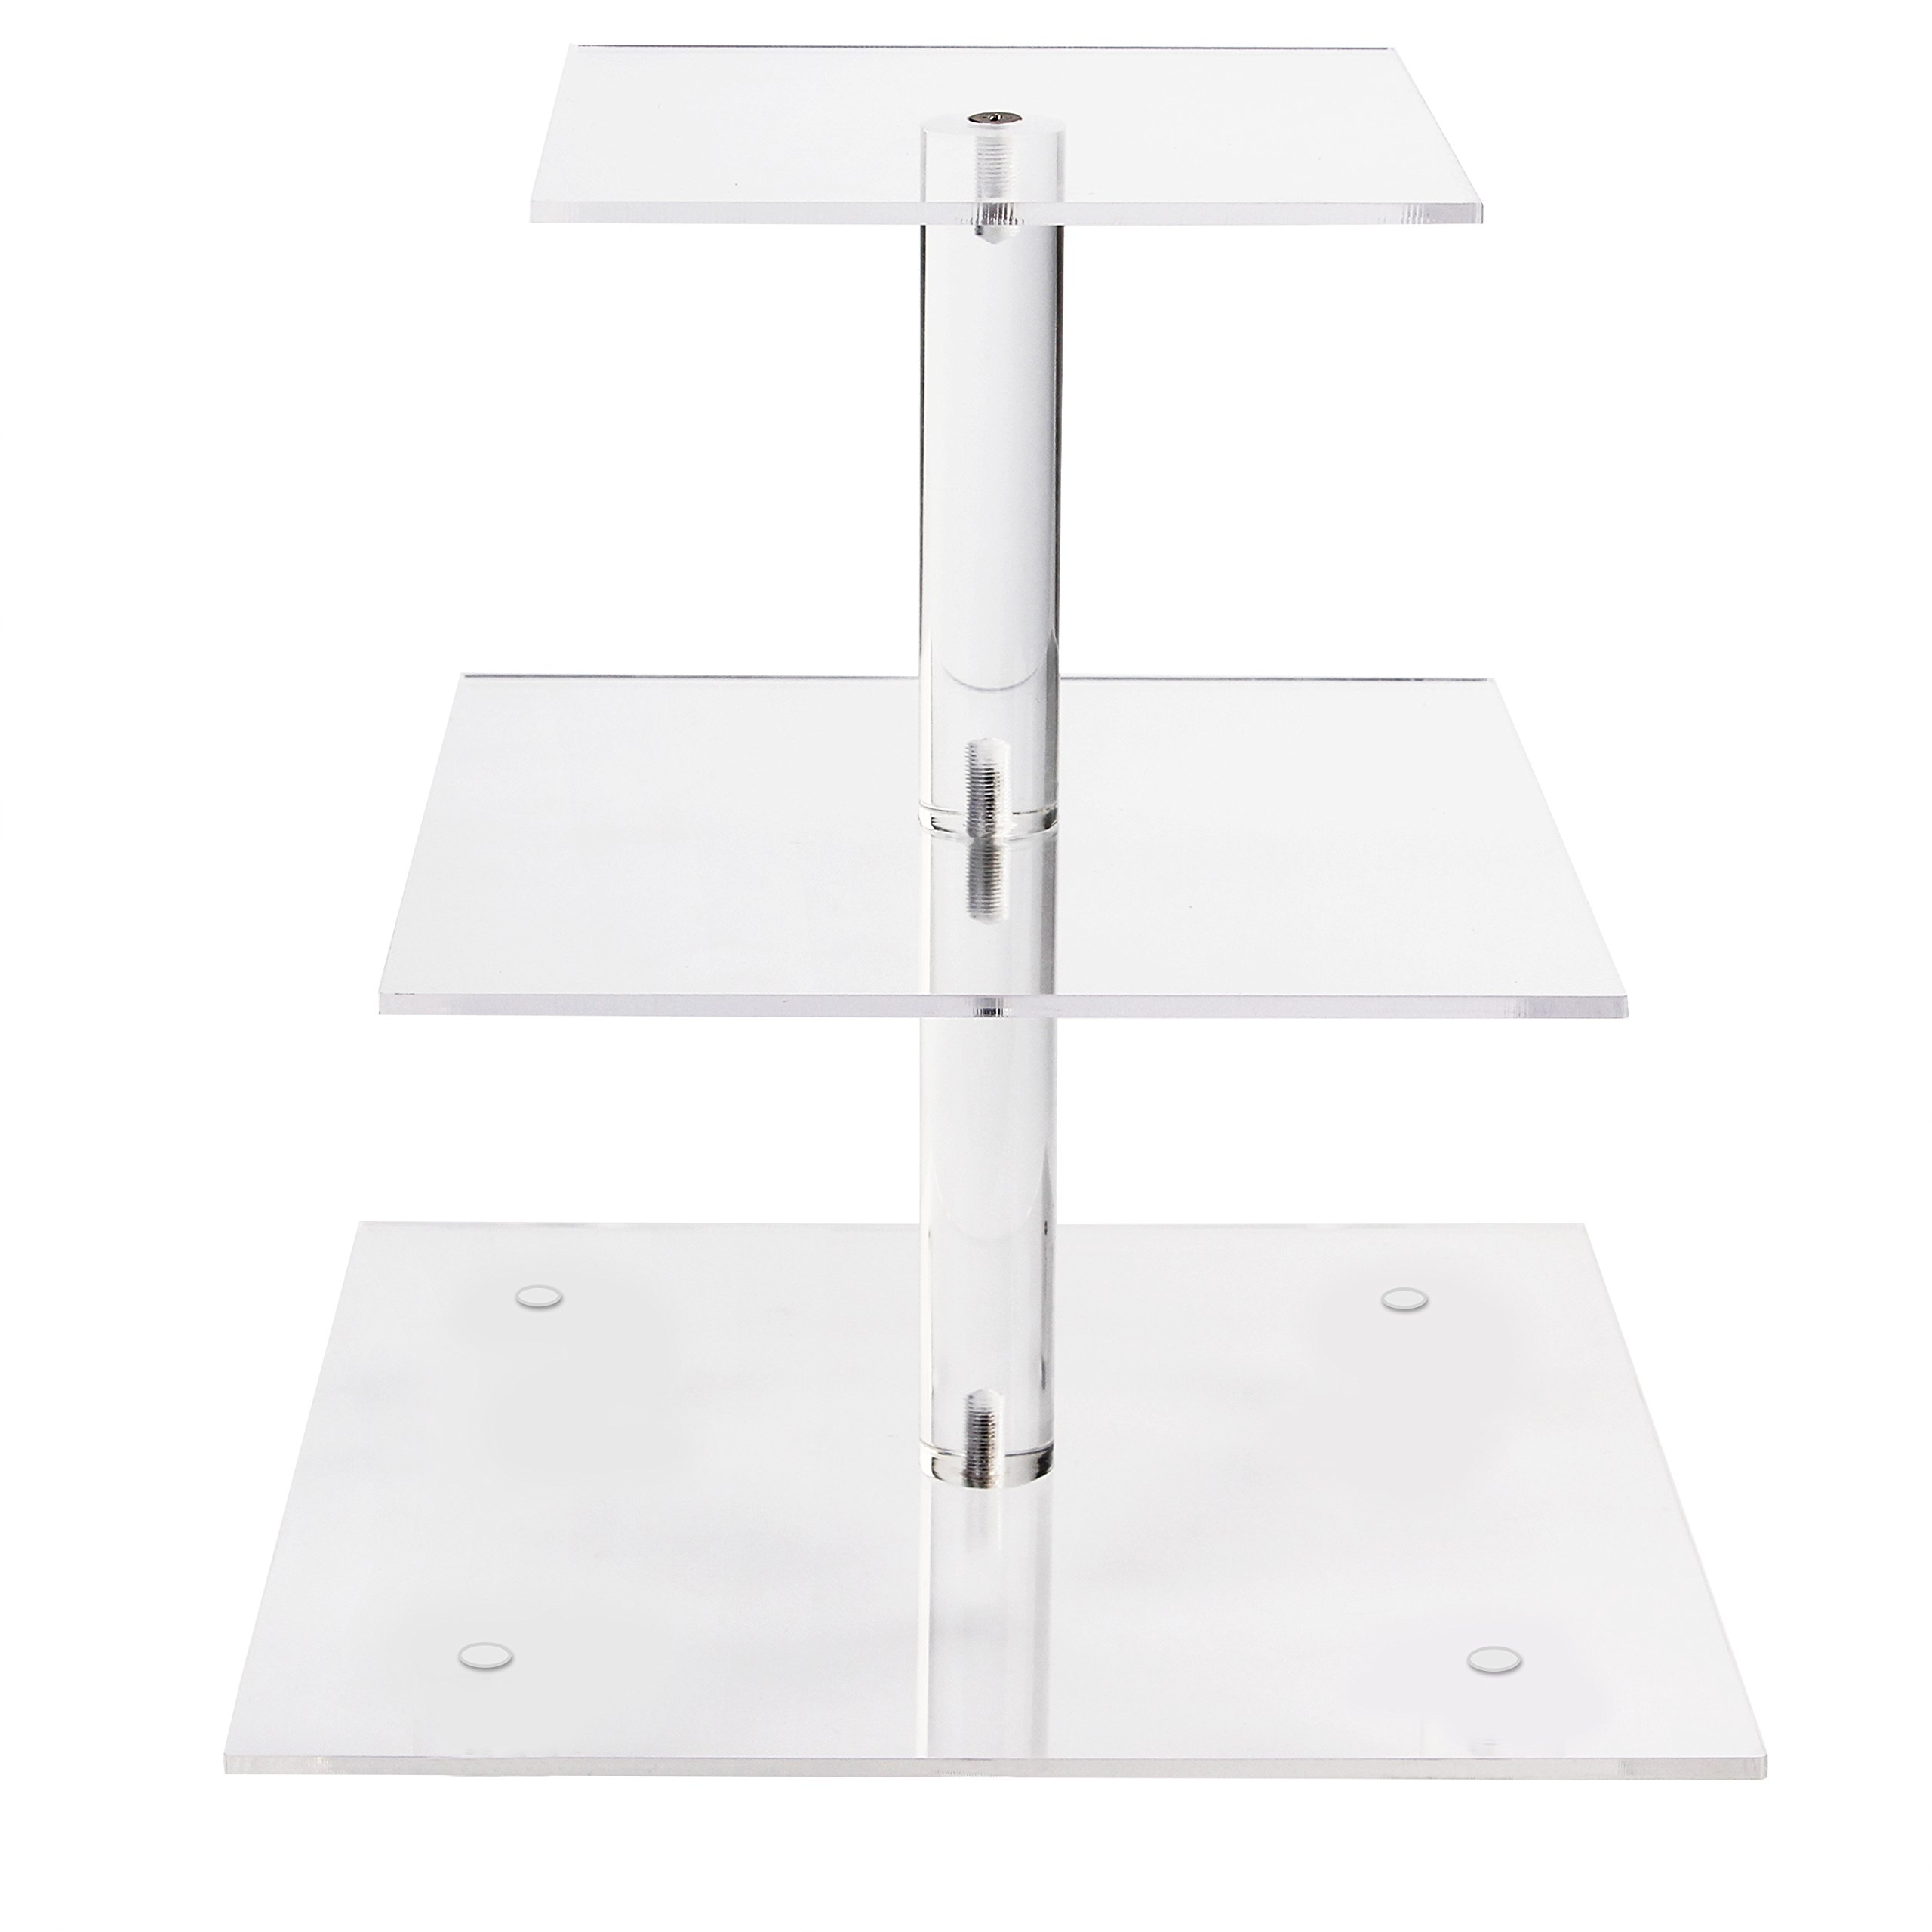 YestBuy 3 Tier Maypole Square Wedding Party Tree Tower Acrylic Cupcake Display Stand 3 Tier Square(4.7'' between 2 layers)